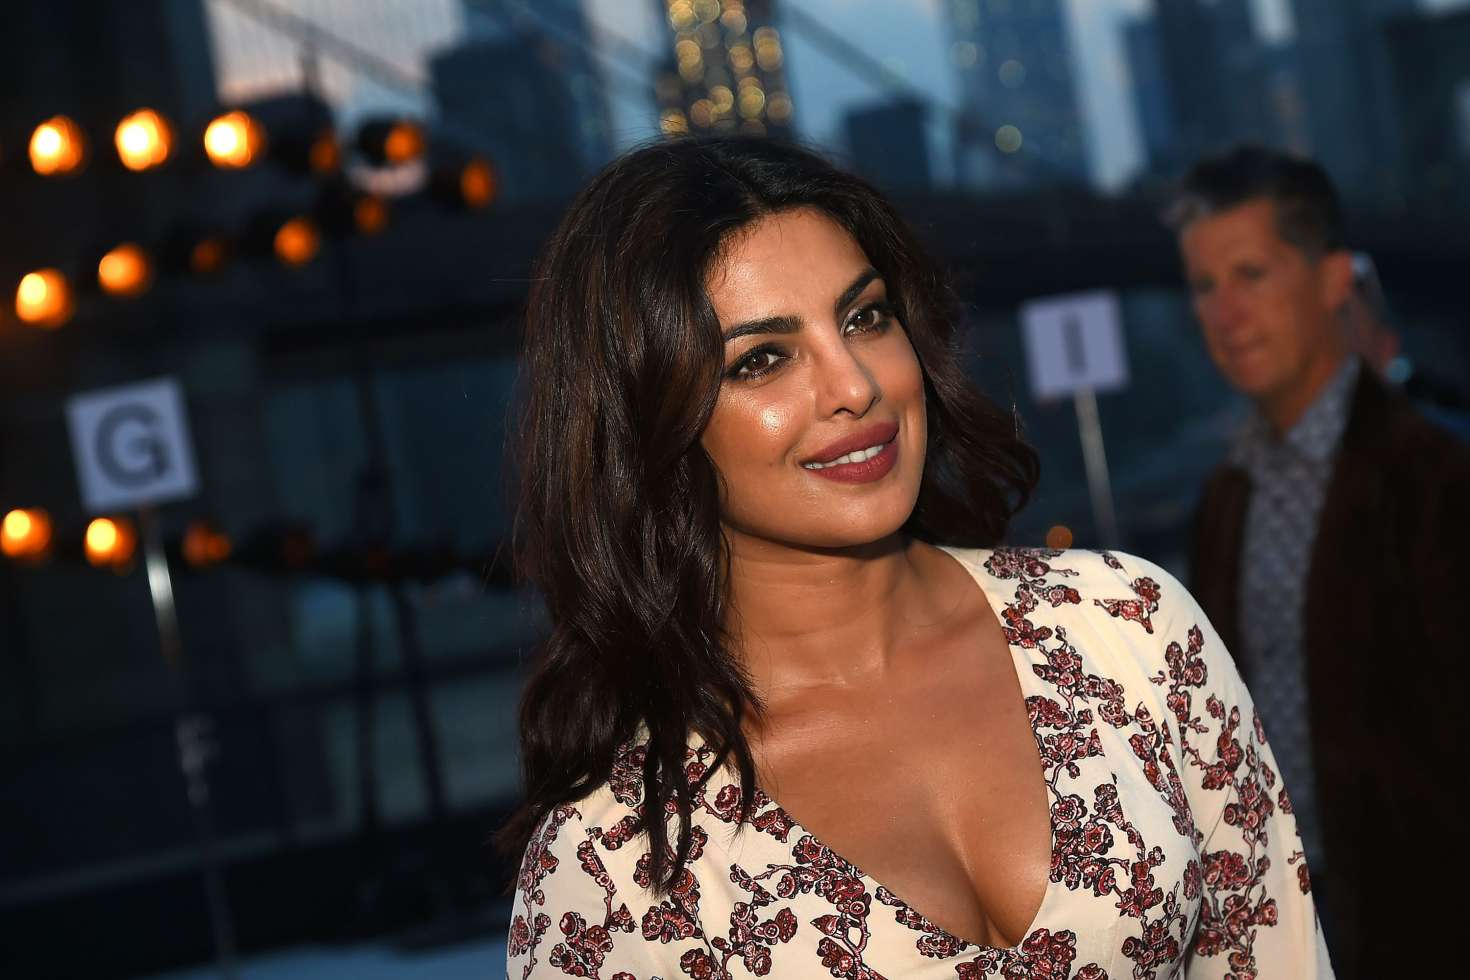 Priyanka Chopra - Latest News, Photos, Videos, Awards 52